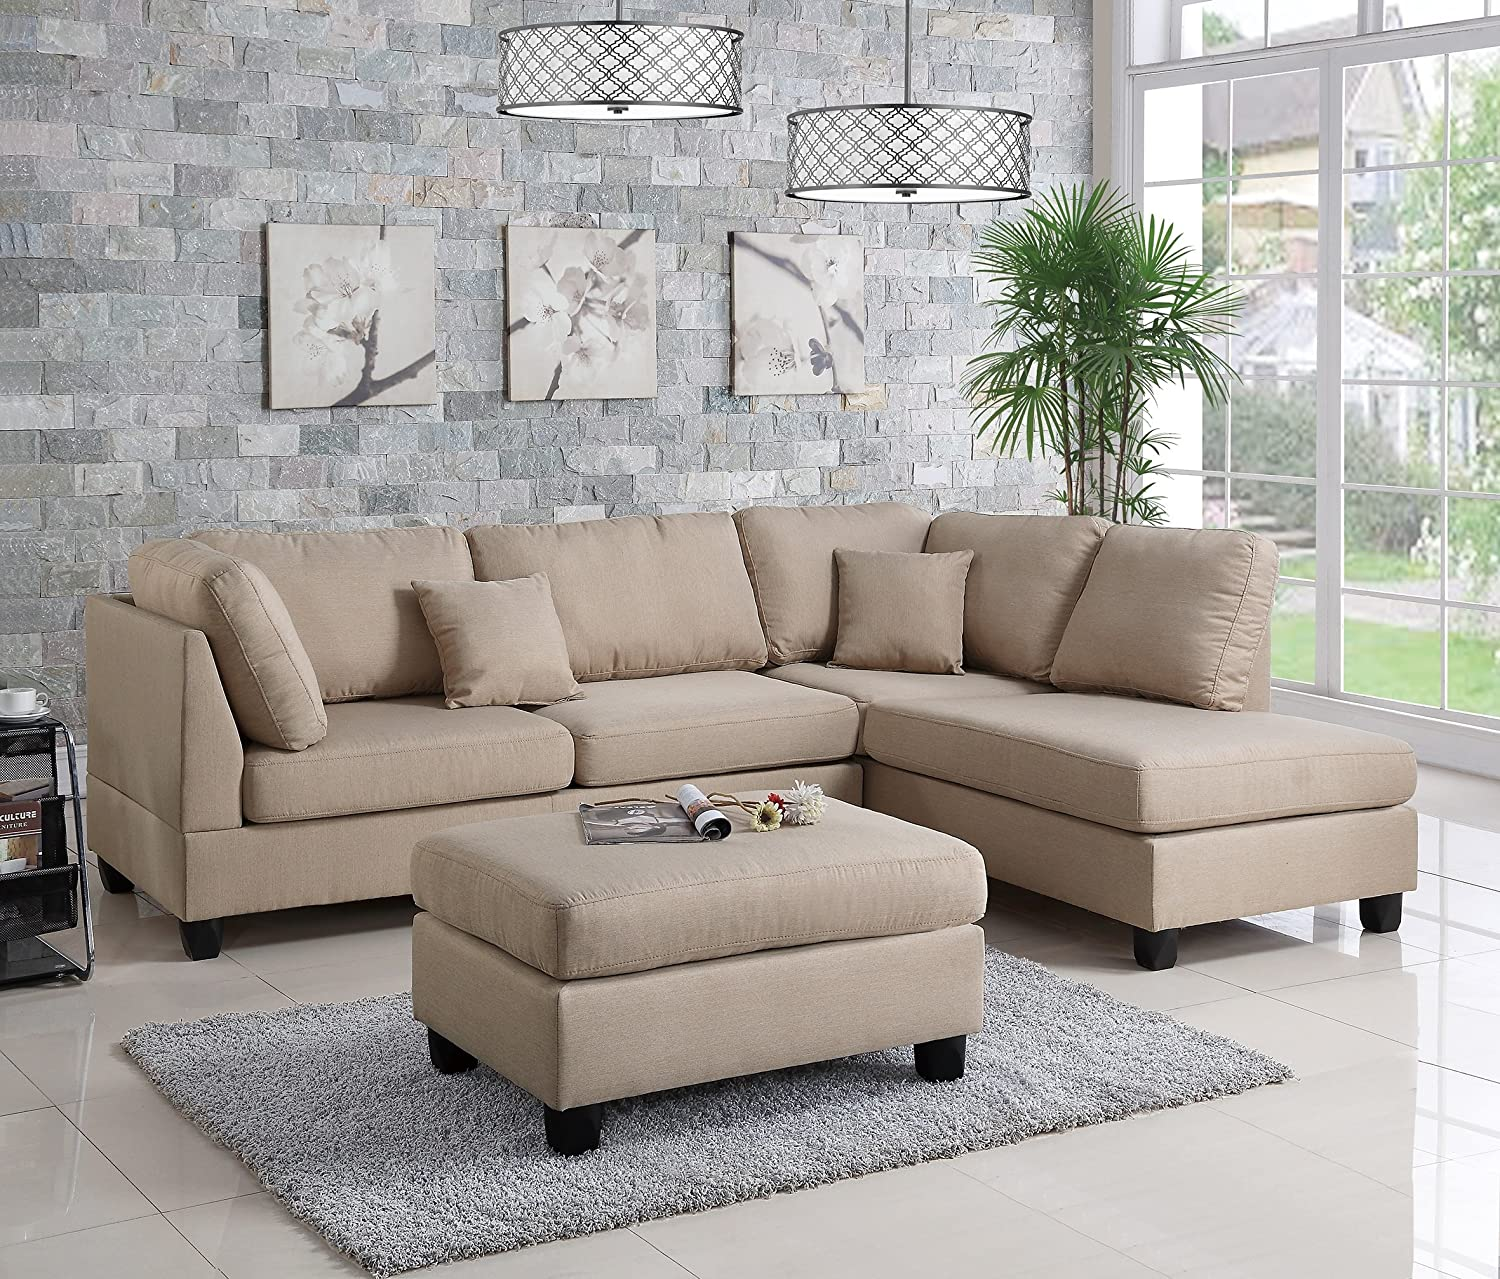 Amazon.com: Pistoia 3 Pieces Sectional Sofa With Ottoman Upholstered In Sand  Linen Like Fabric: Kitchen U0026 Dining